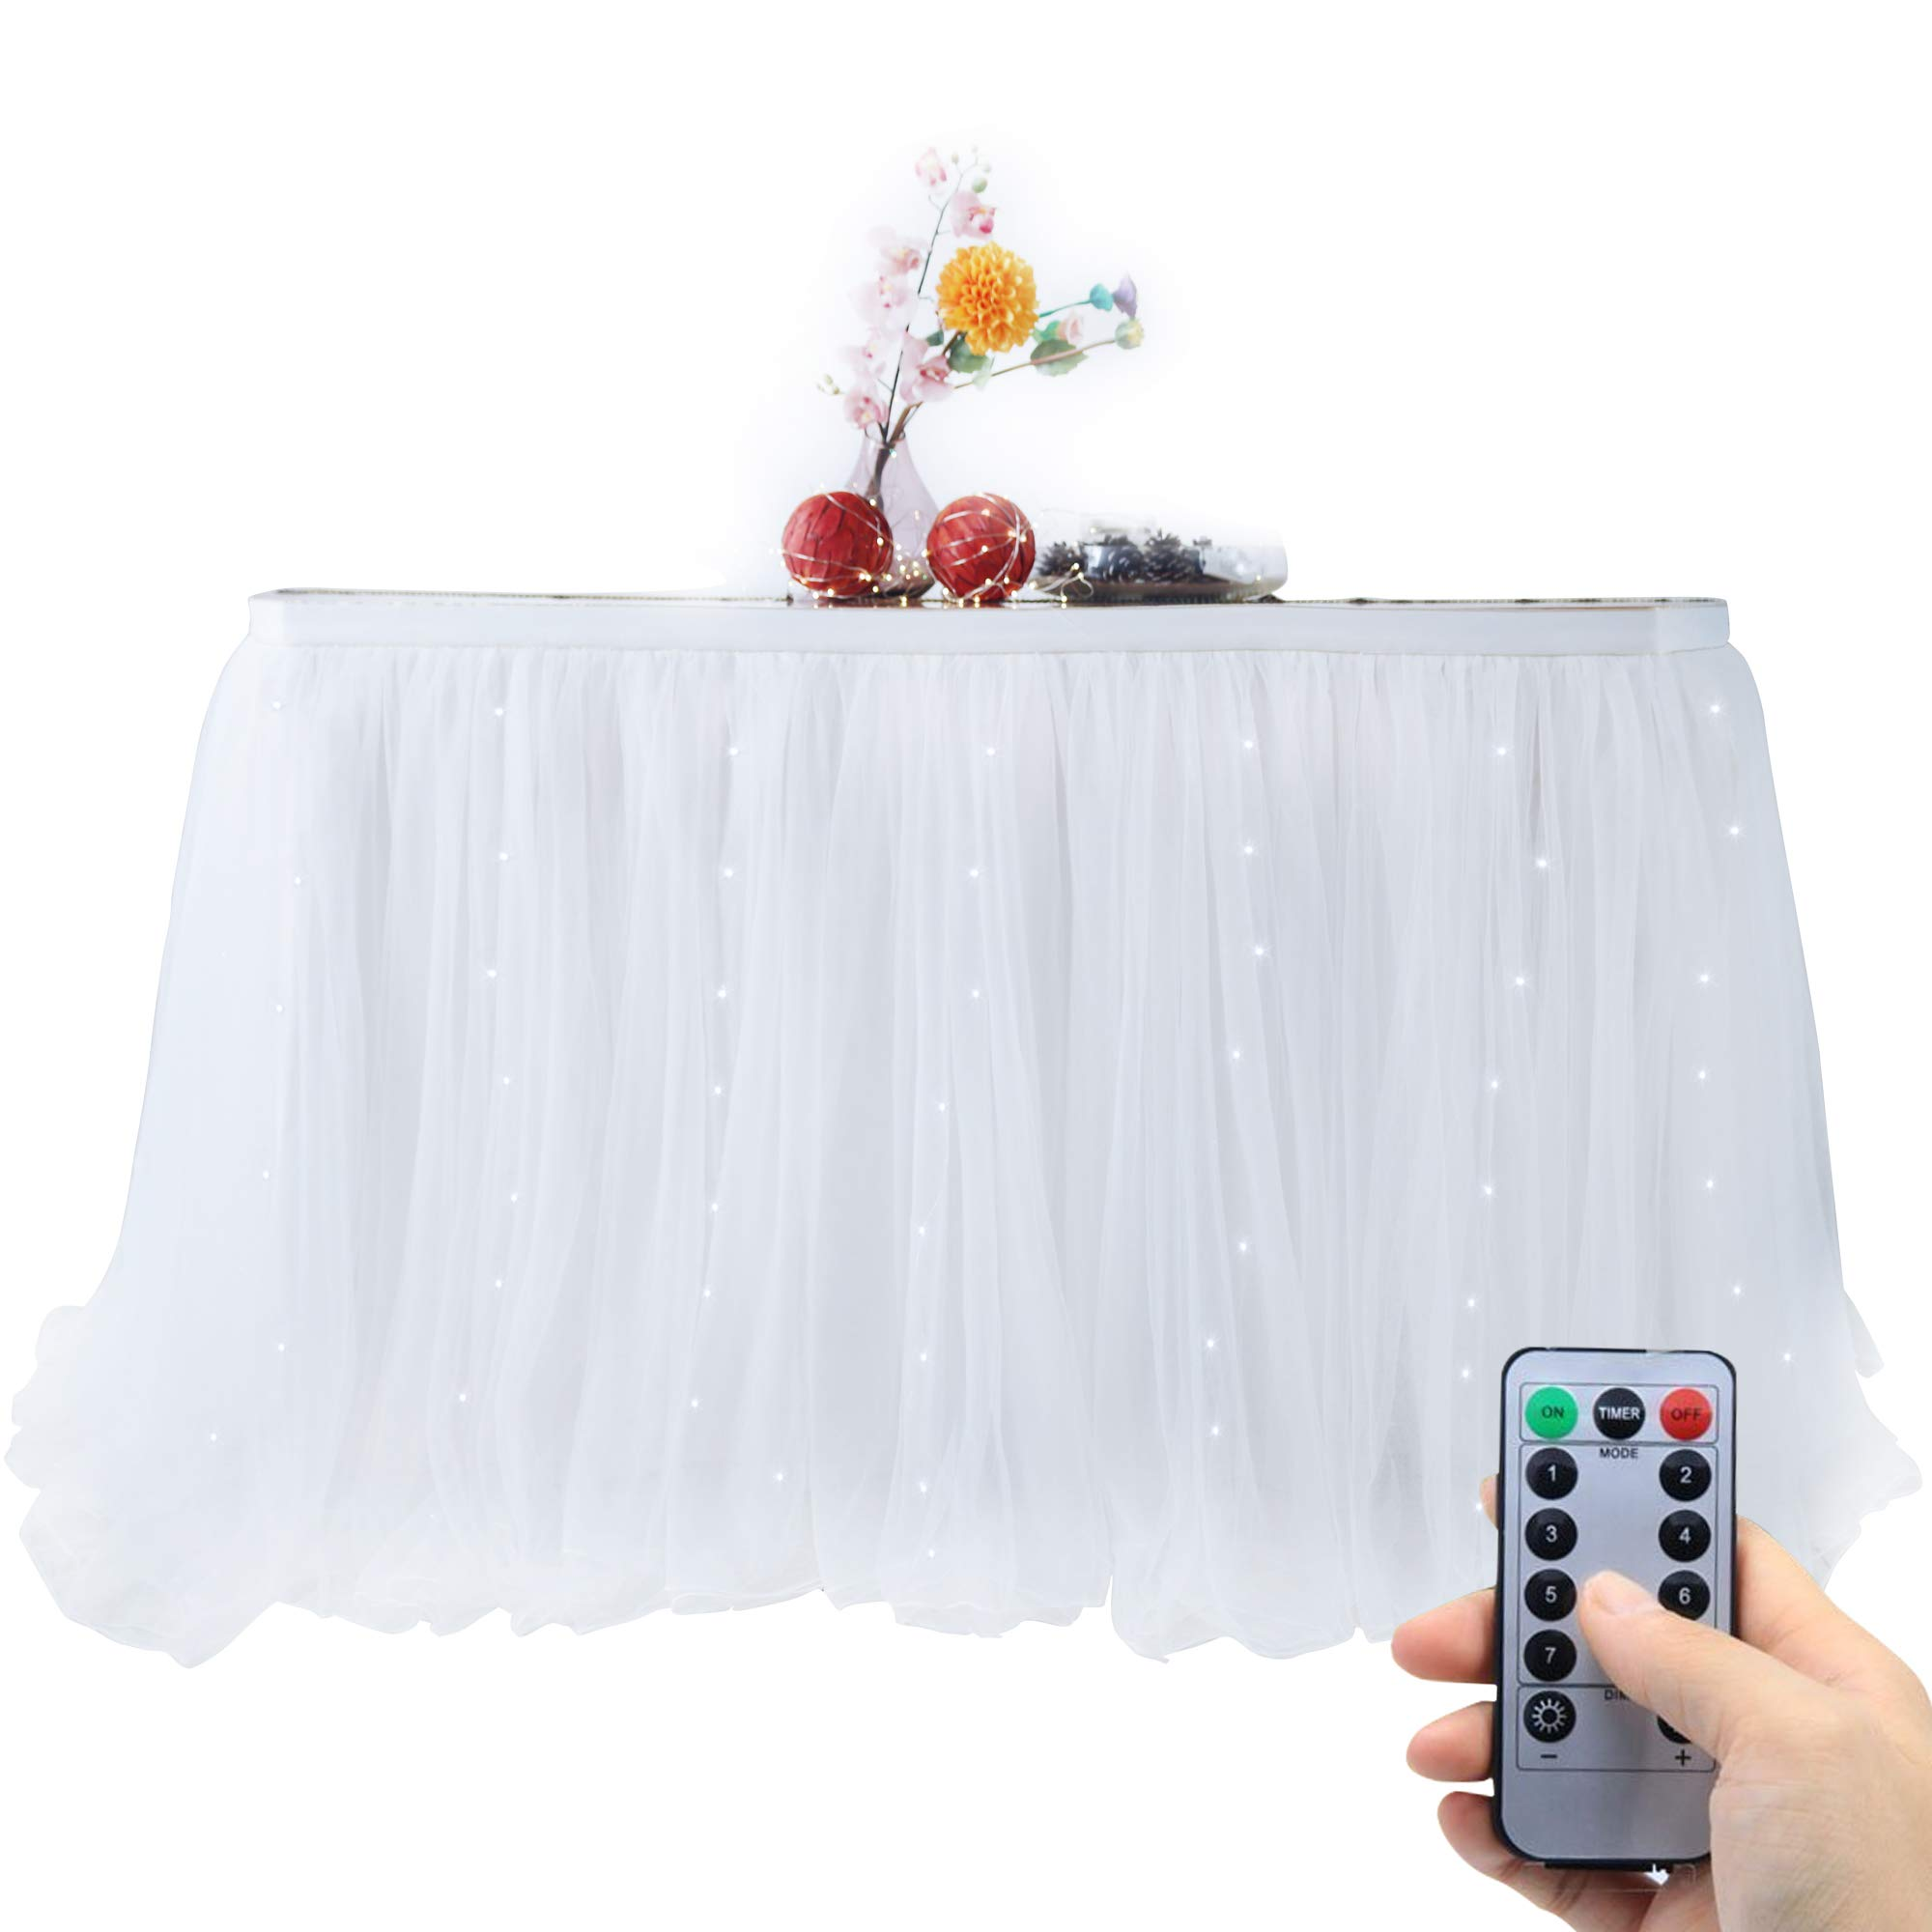 OakHaomie 10ft Table Skirt Tulle Tutu Table Cloth with 15pcs String Lights for Rectangle or Round Table for Party,Wedding,Birthday Party&Home Decoration,Table Skirting (White, 10ftX2.63ft) by OakHaomie